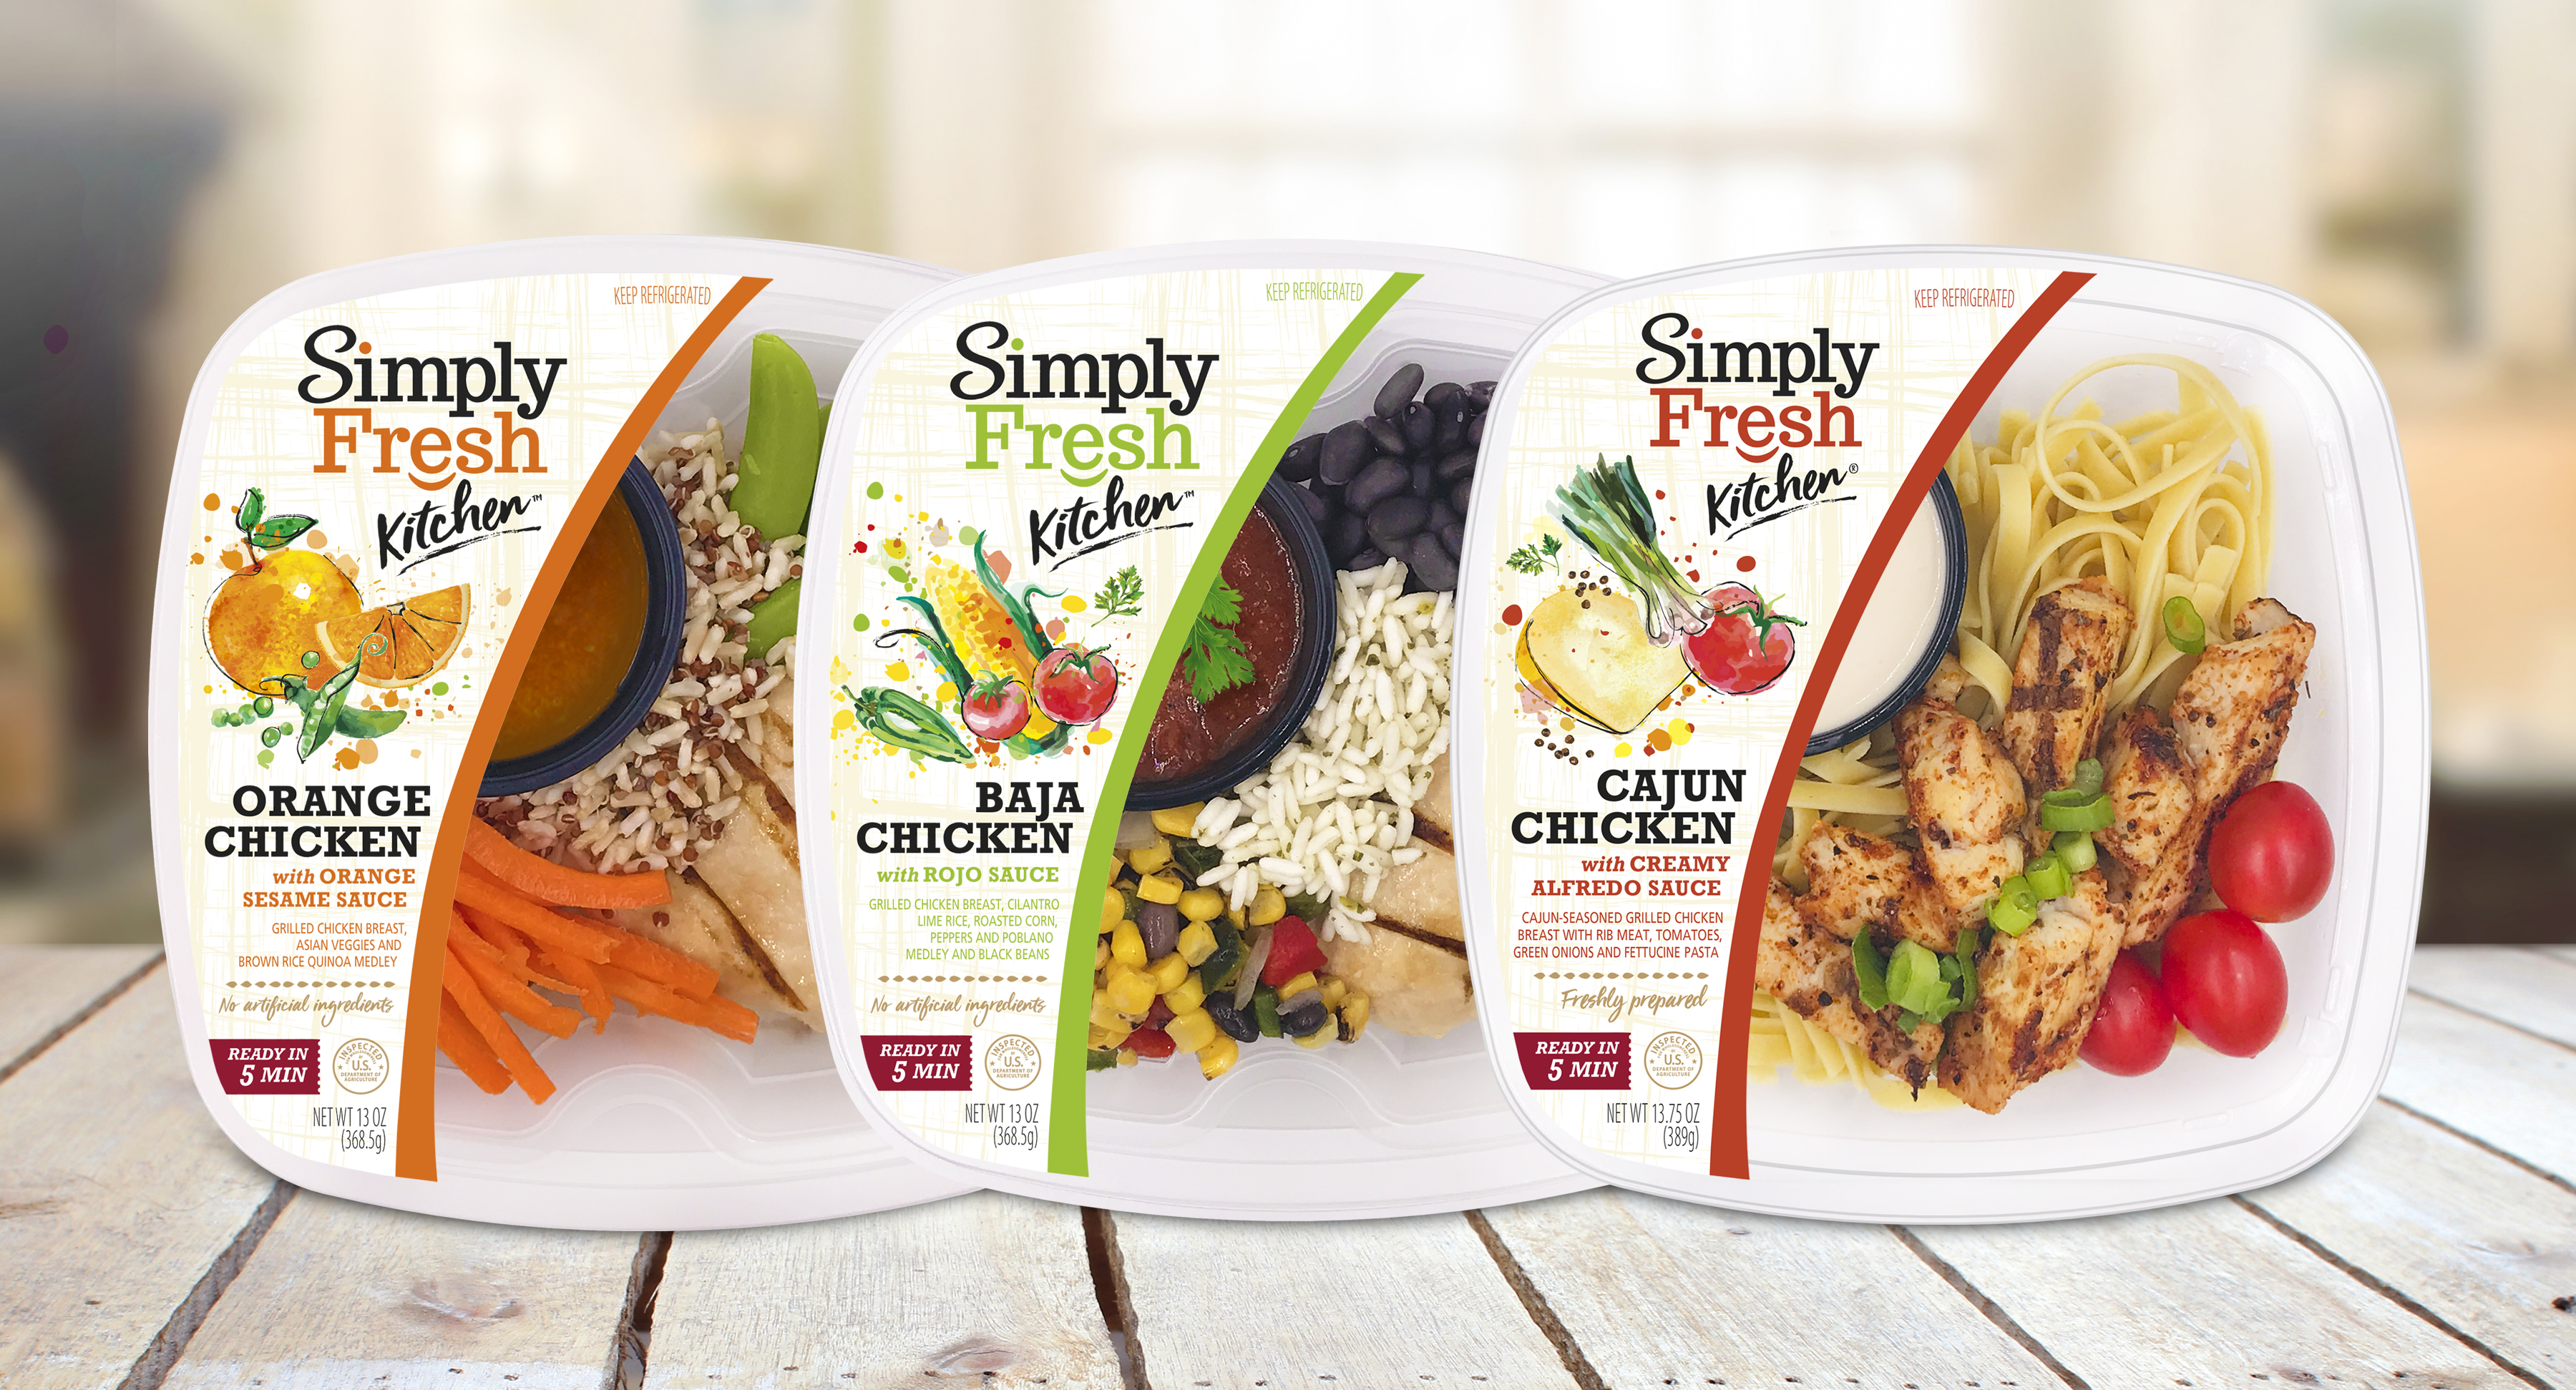 Simply Fresh meals